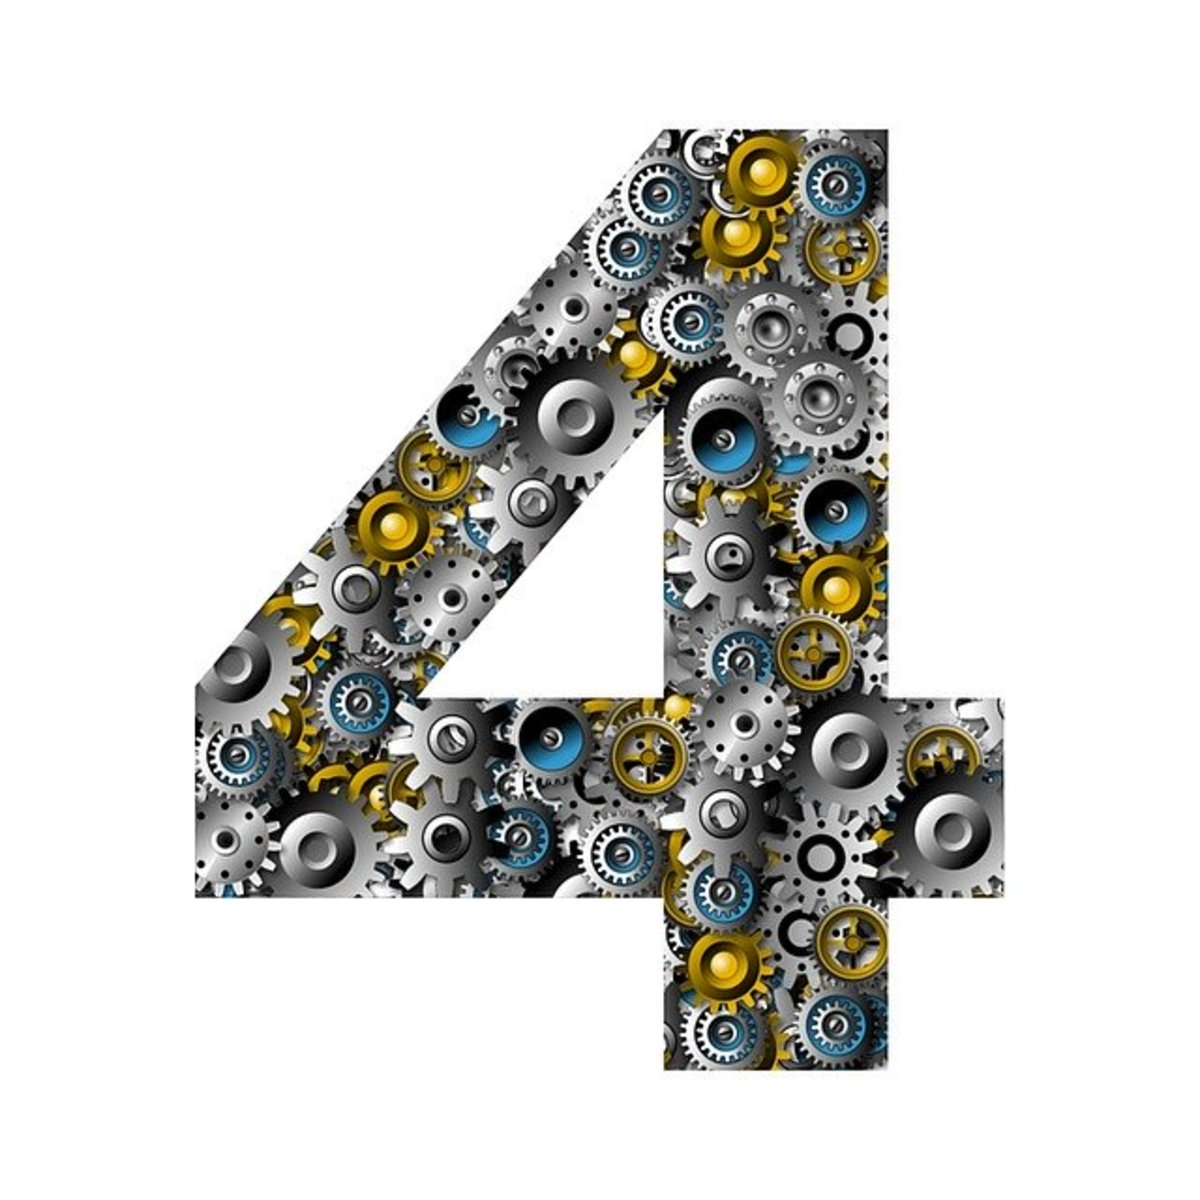 The Number Four in Numerology: The Hard-Working Soldier